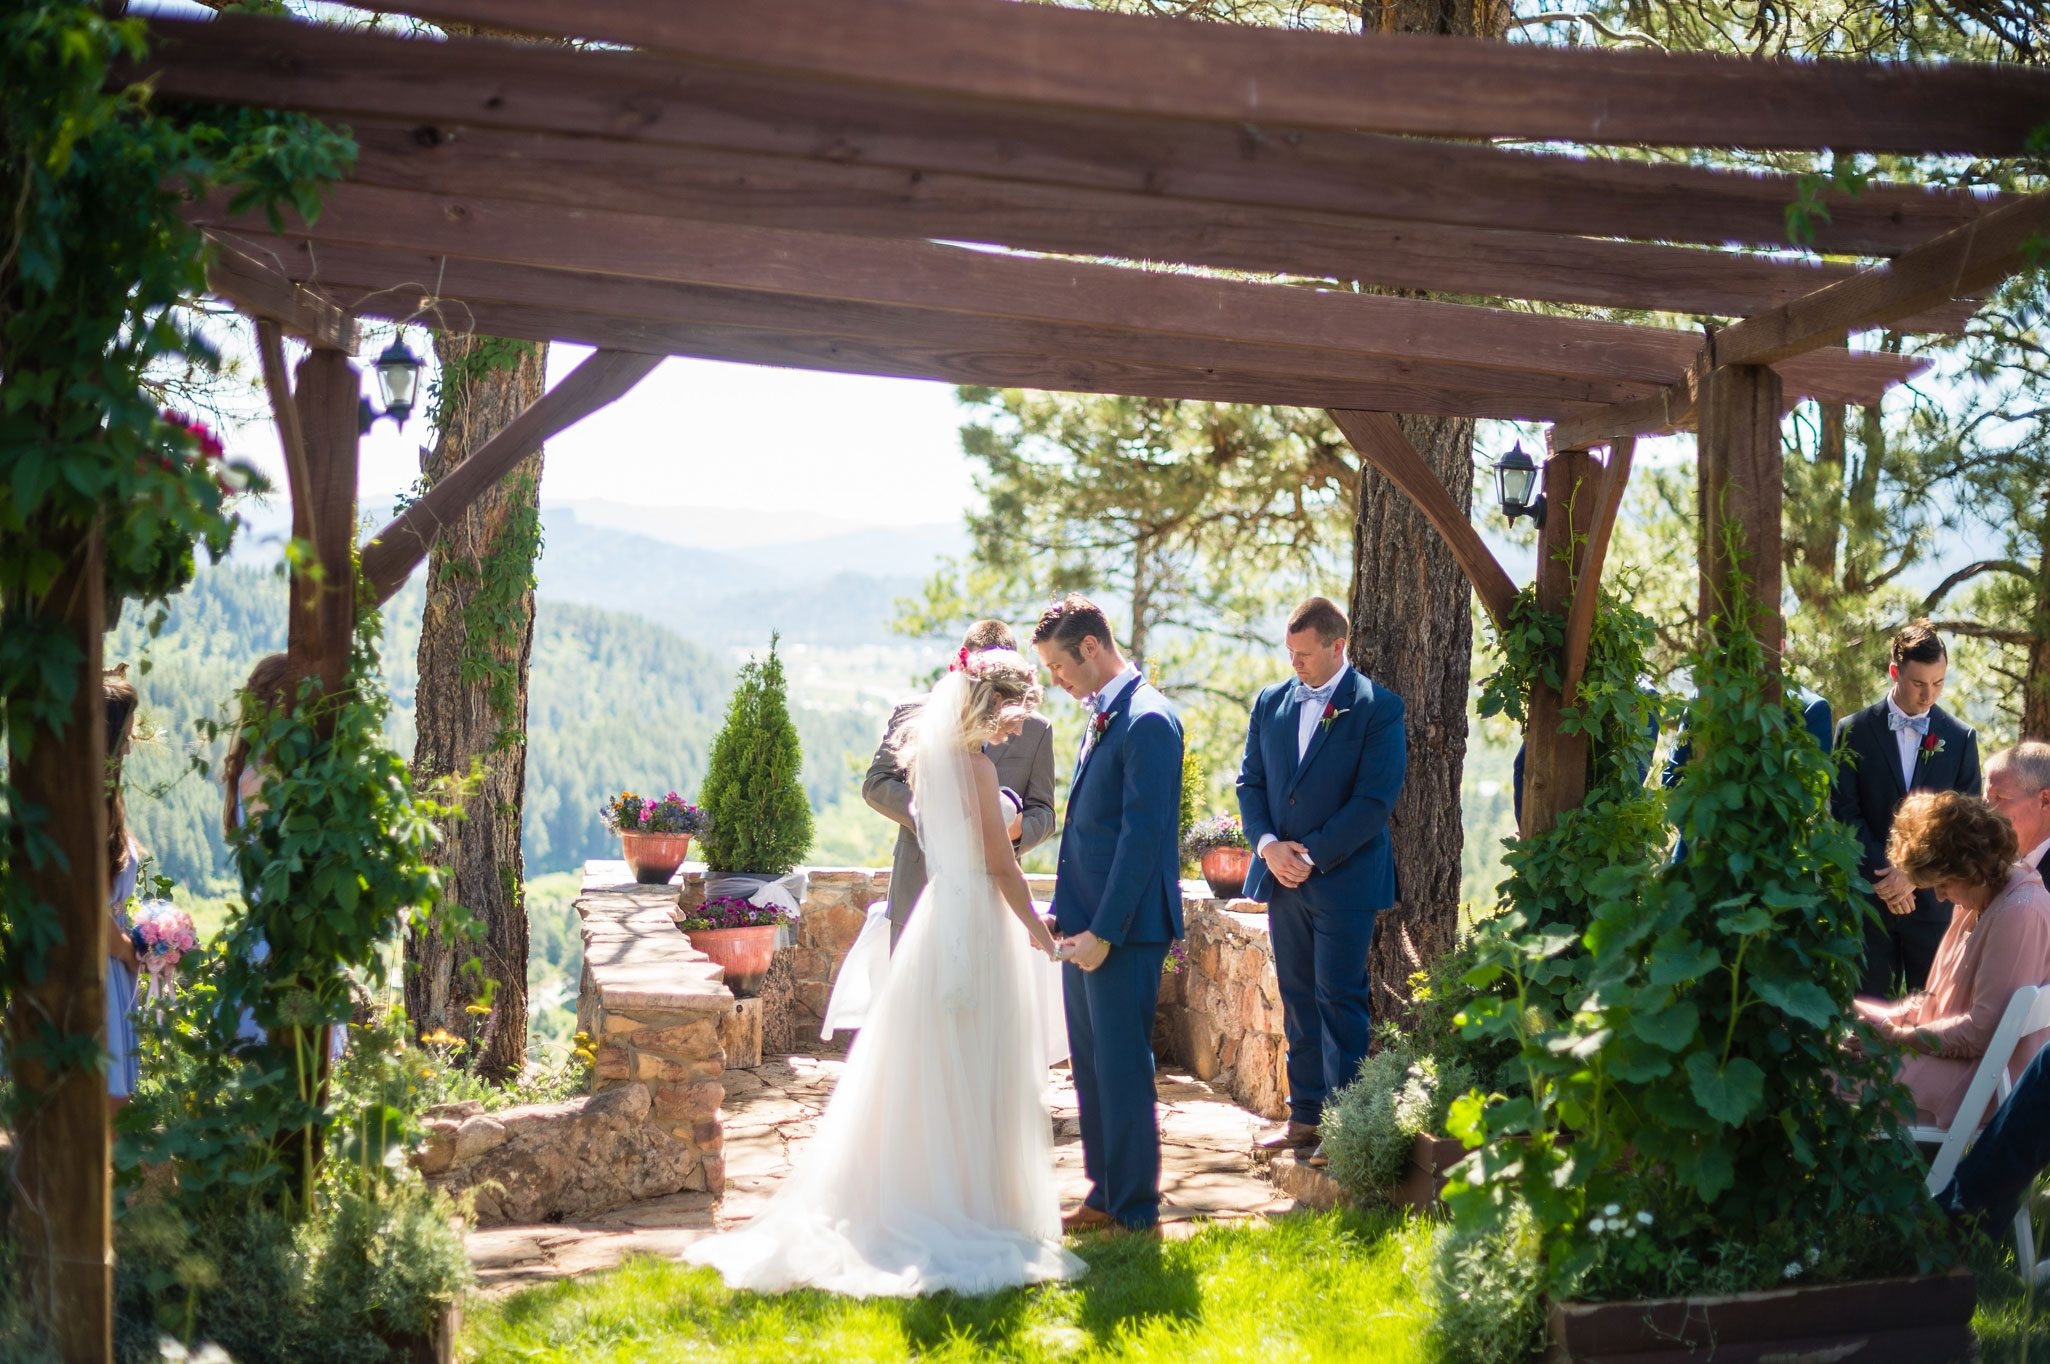 Outdoor ceremony with a vintage bike theme in the mountains of Pagosa Spring, Colorado